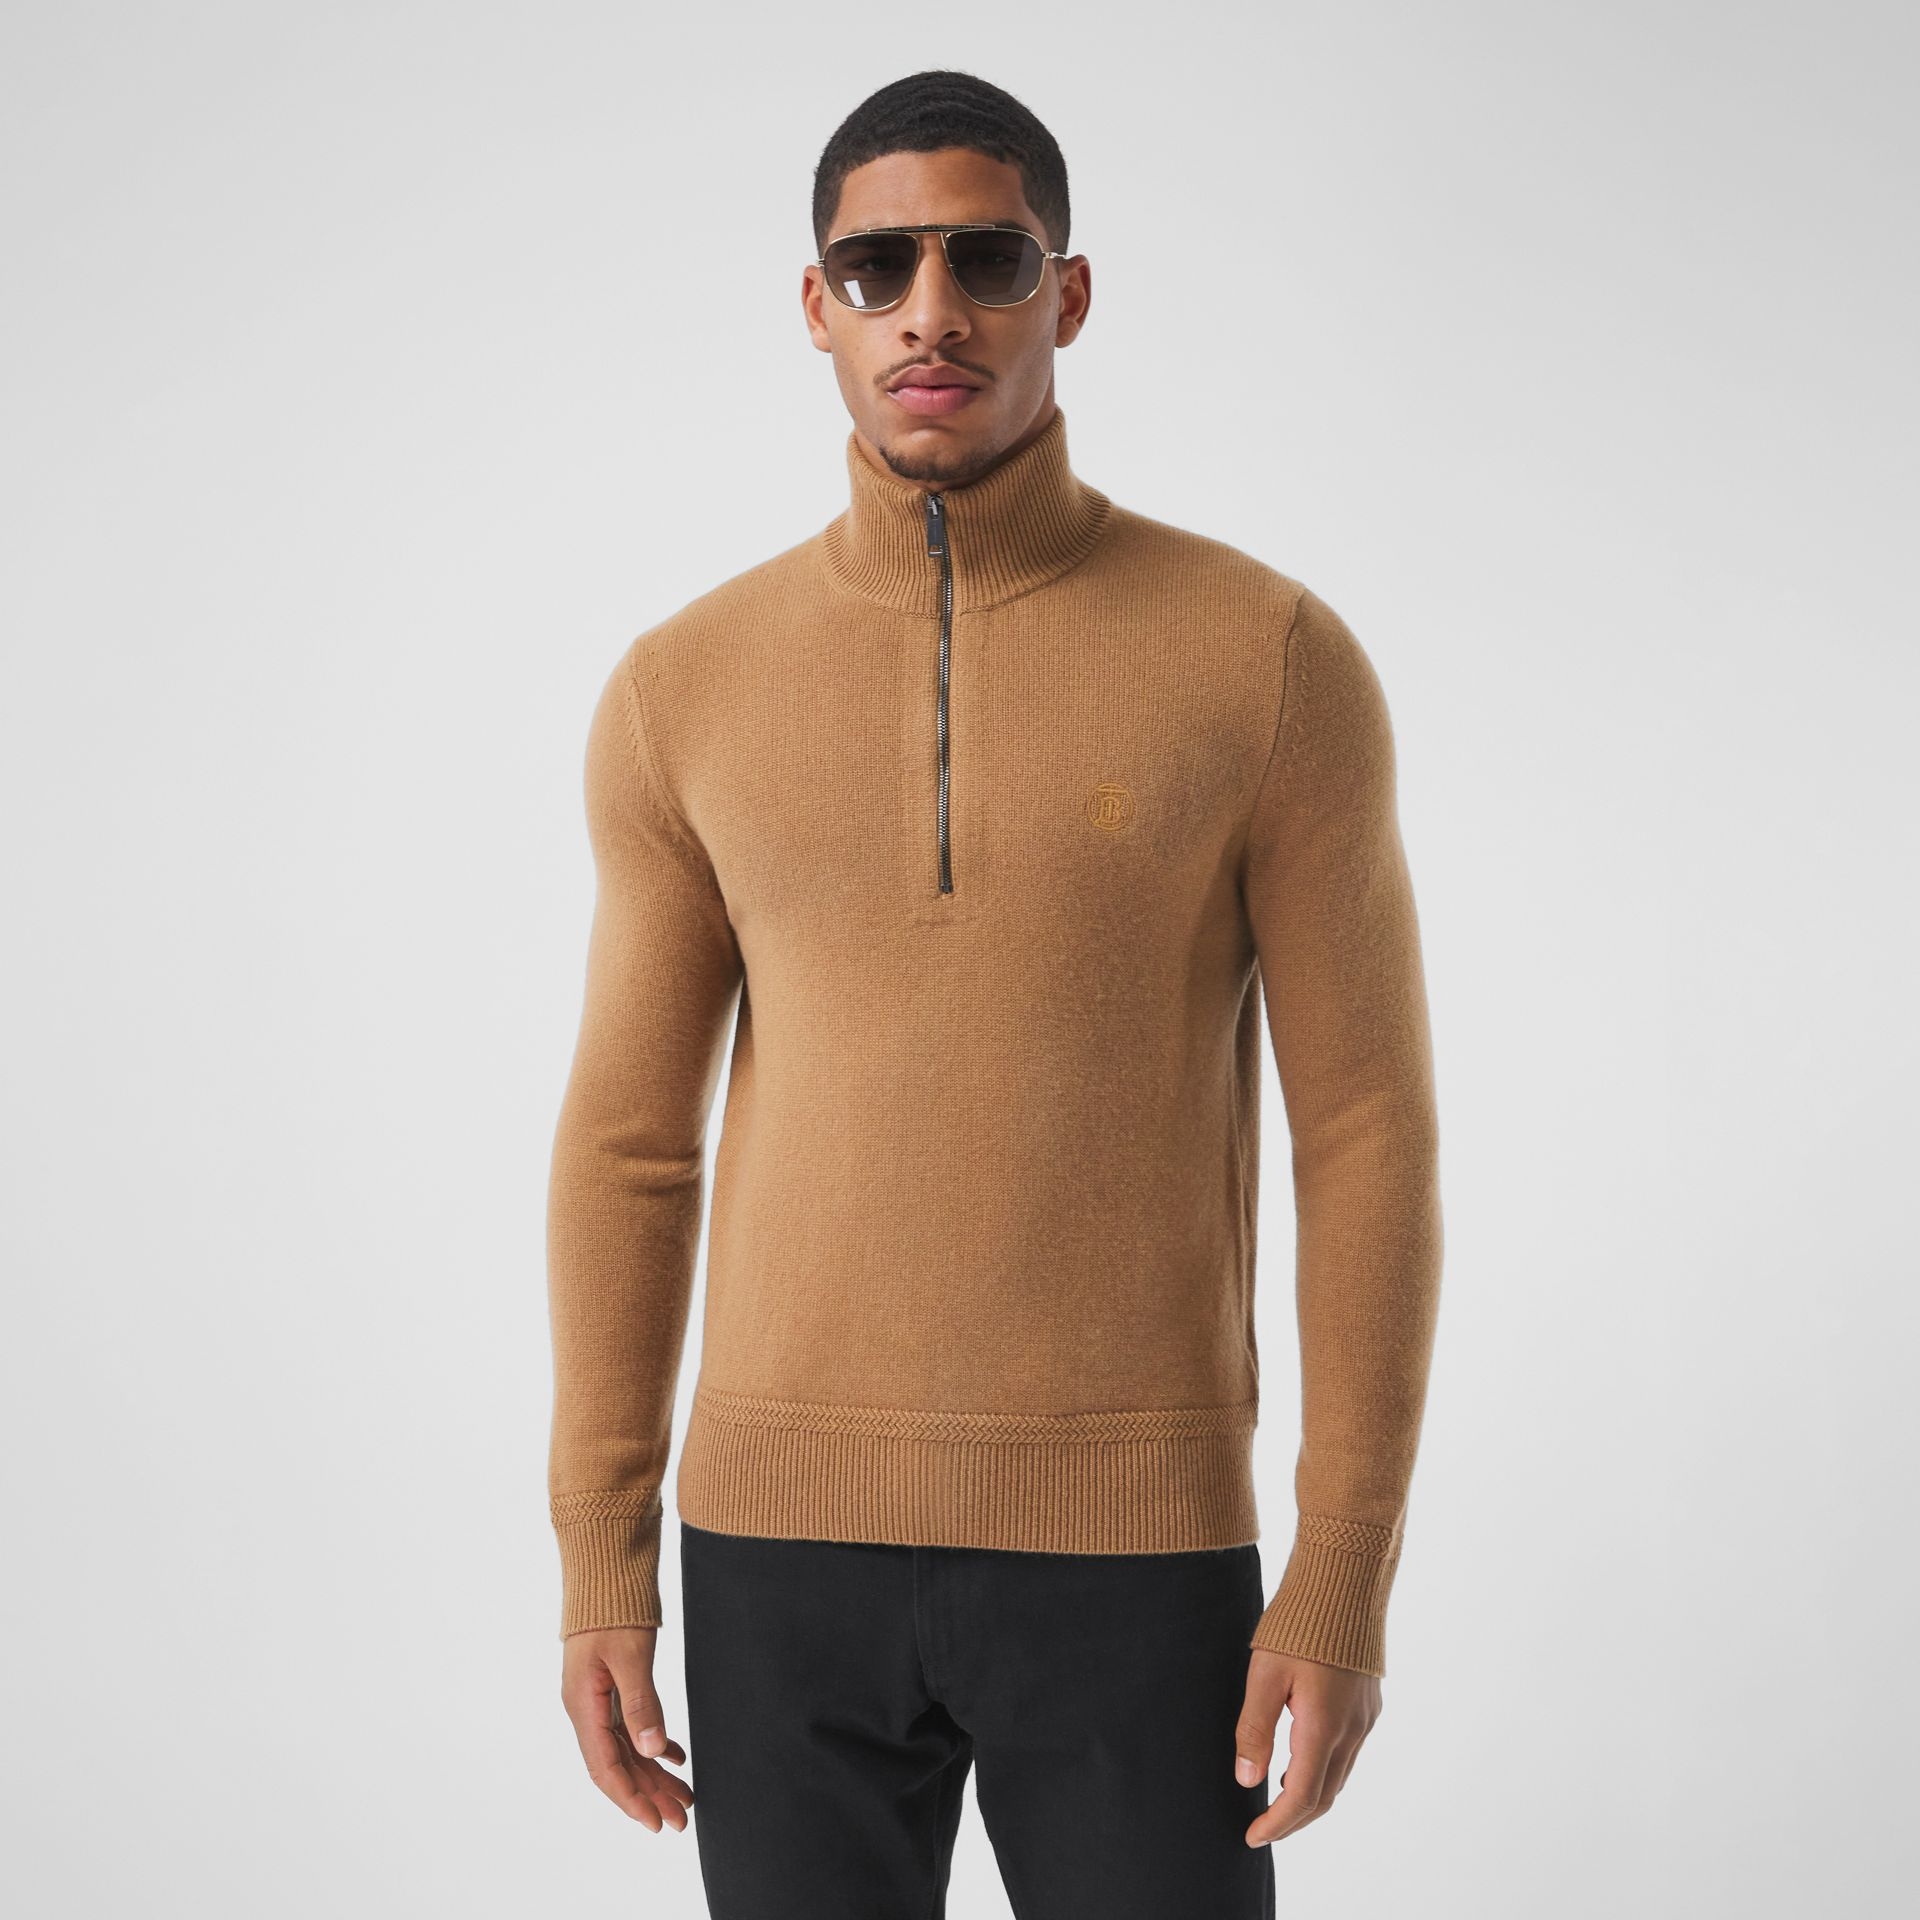 Monogram Motif Cashmere Funnel Neck Sweater in Camel - Men | Burberry - gallery image 0